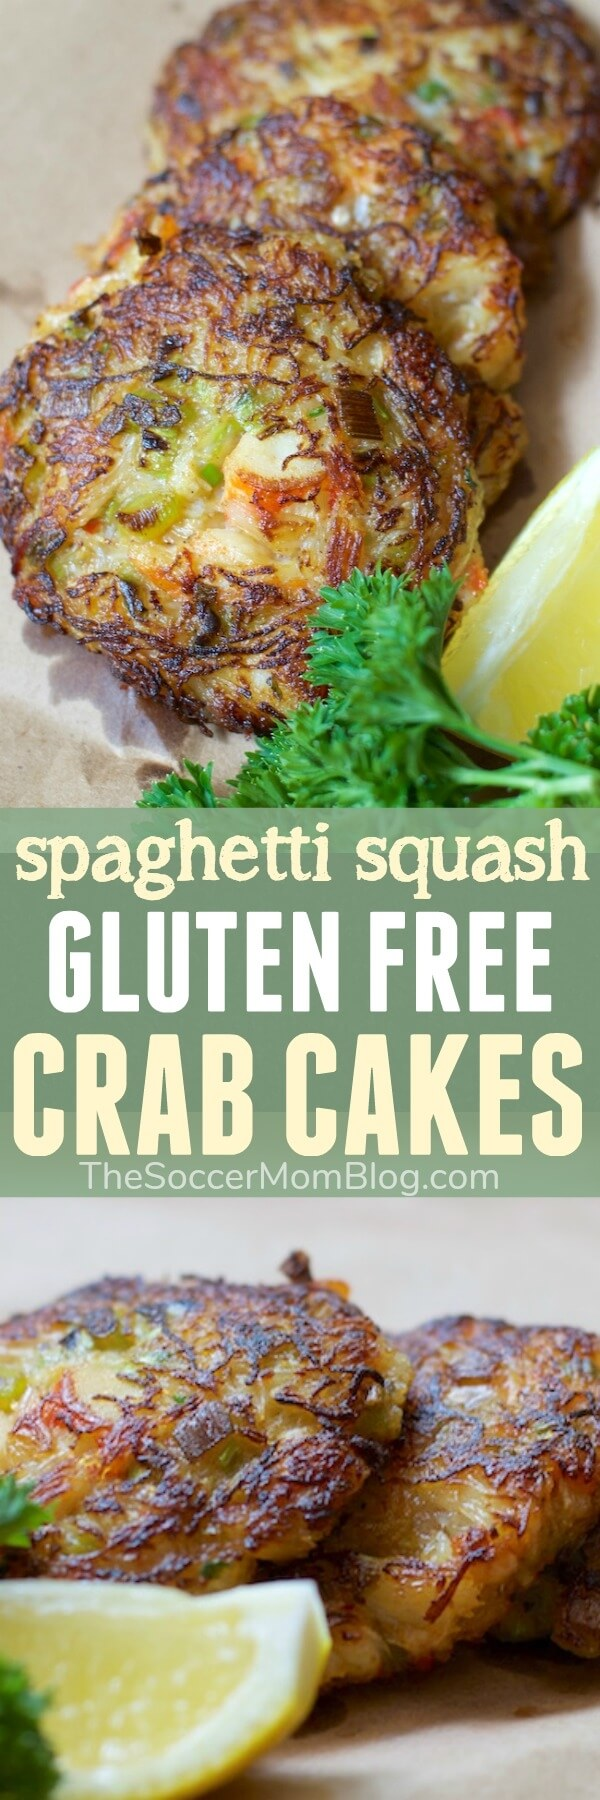 All good stuff and no filler! These gluten free crab cakes are made with TONS of crab, plus a spaghetti squash ingredient swap makes them lower in carbs!